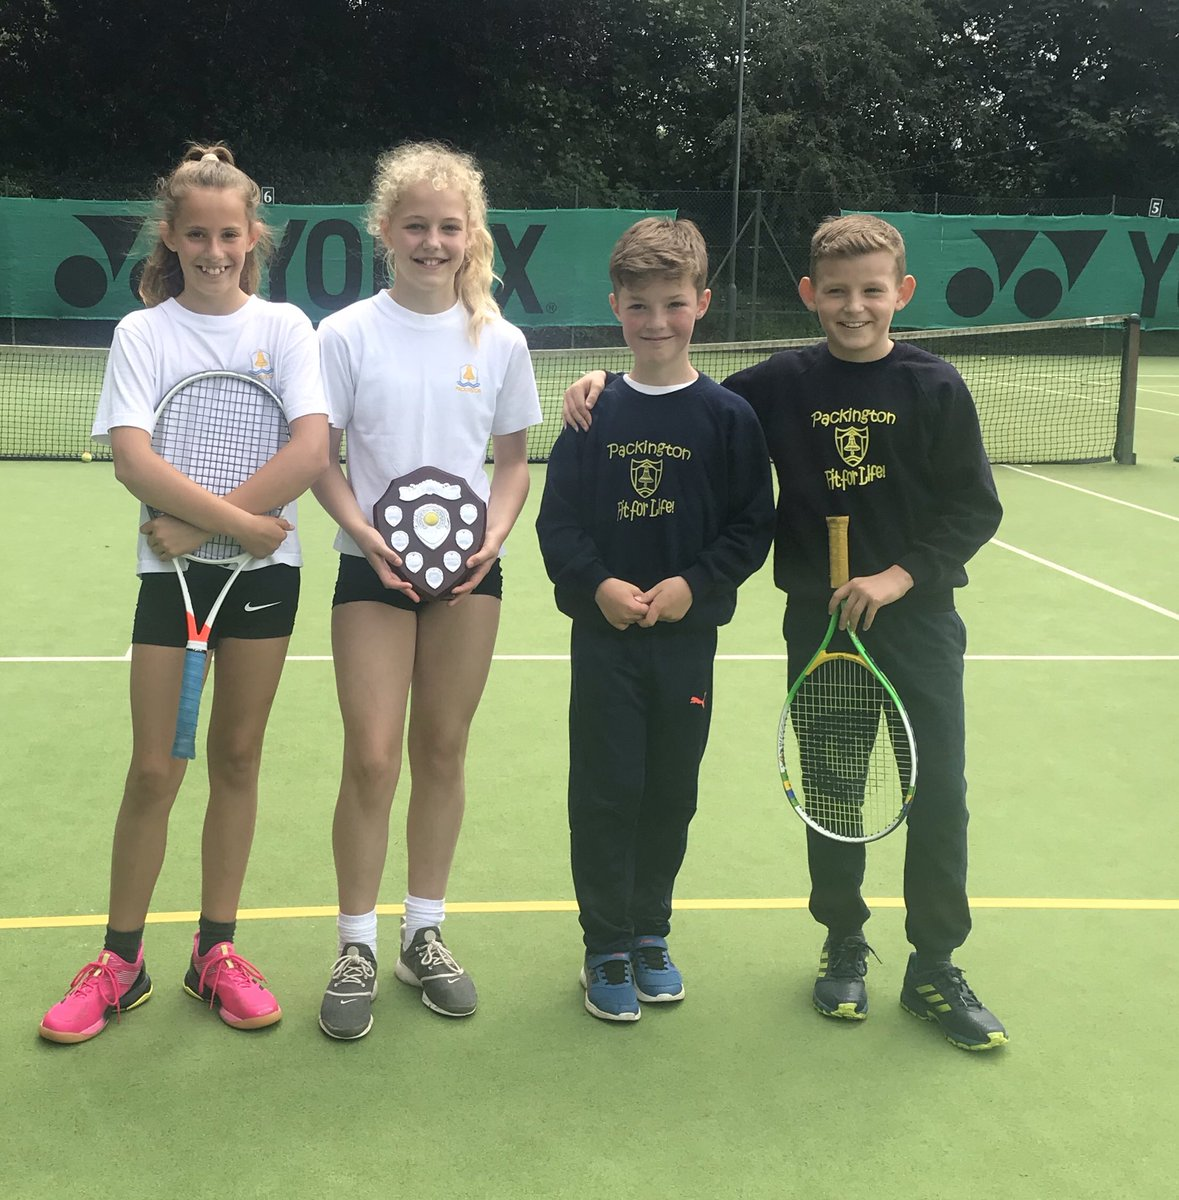 Well done to our tennis winners of year 3/4 and year 5/6...@Pack2ALL! Congratulations to @Willesleyschool and @WhitwickPrimary for making it to the finals! Thanks to @ashbytennisclub for hosting and running the final! 🎾 #tennis #schoolsports #summersports